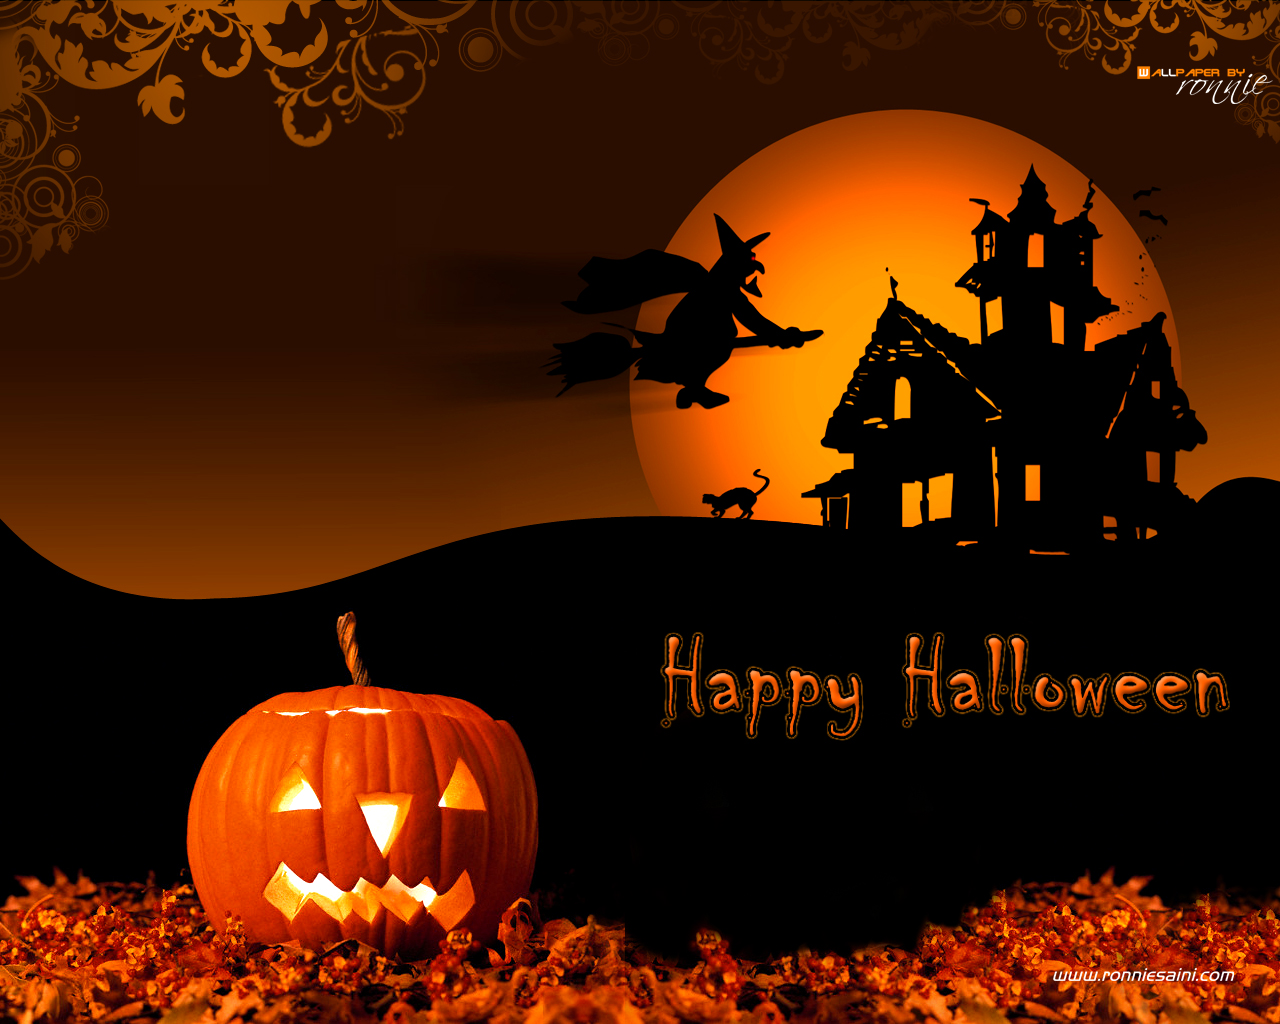 halloween fractales dans photo - photo #24